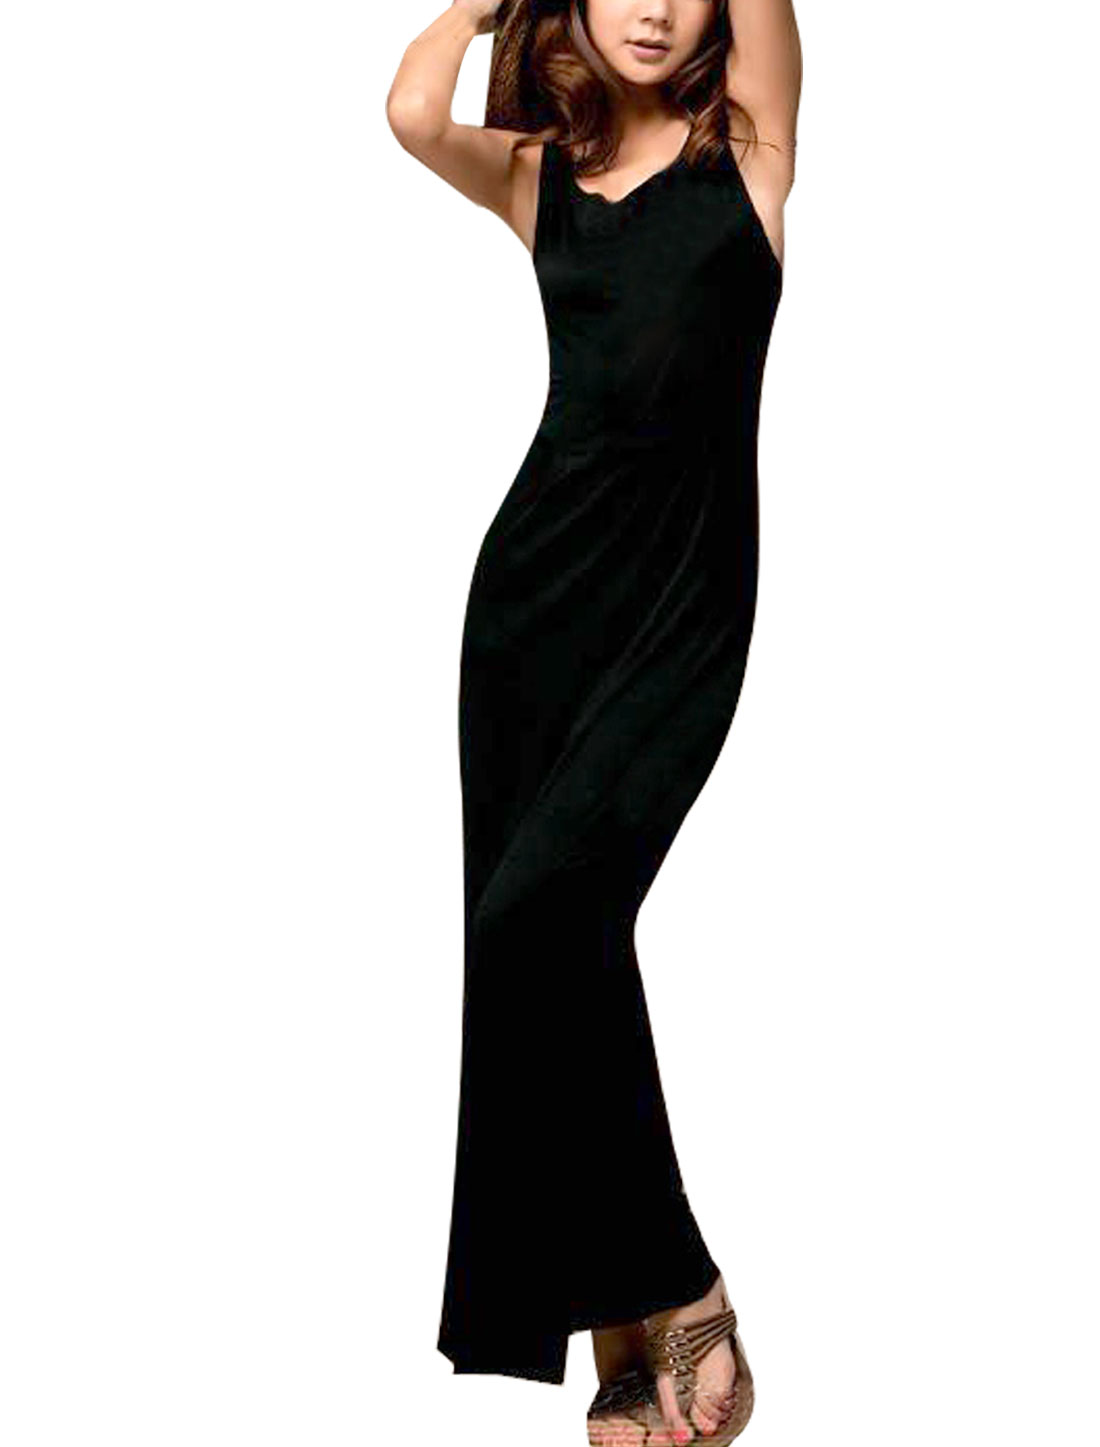 Ladies Scoop Neck Deep V-Back Sleeveless Maxi Dress Black S